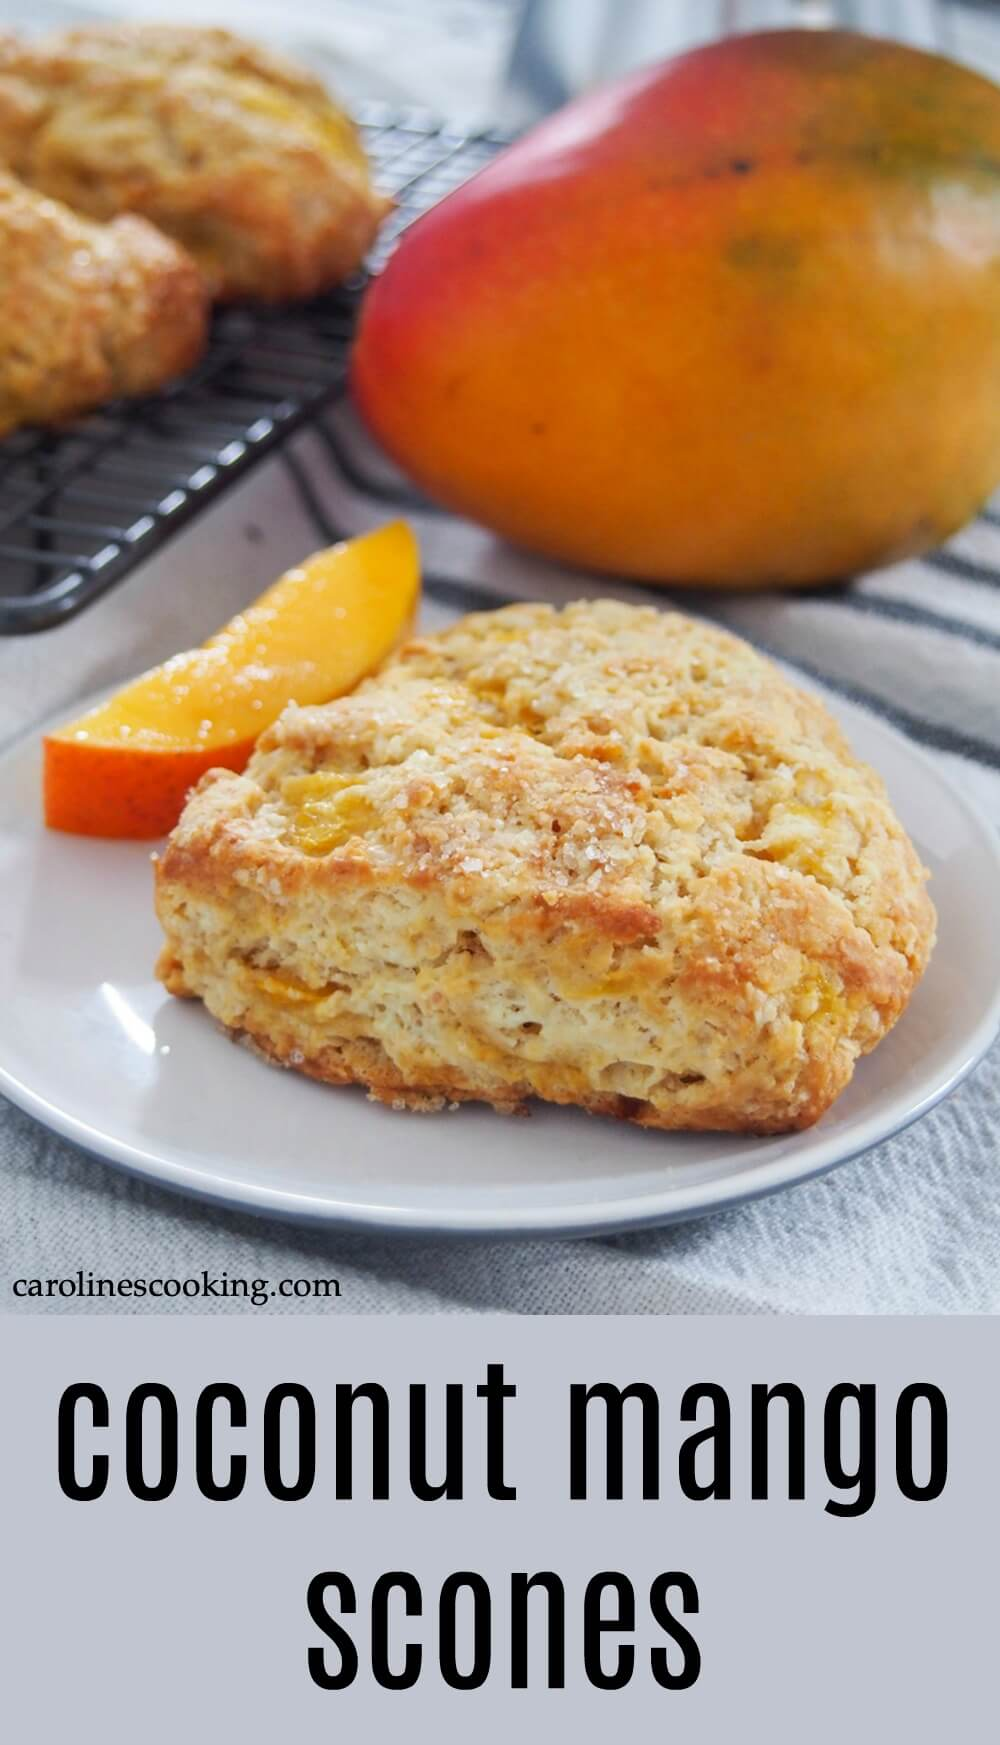 Bite into a taste of the tropics with these delicious coconut mango scones. They're tender inside and crisp outside, packed with juicy fruit and easy to make too. Perfect with your morning coffee, or any excuse. #coconut #mango #scones #baking